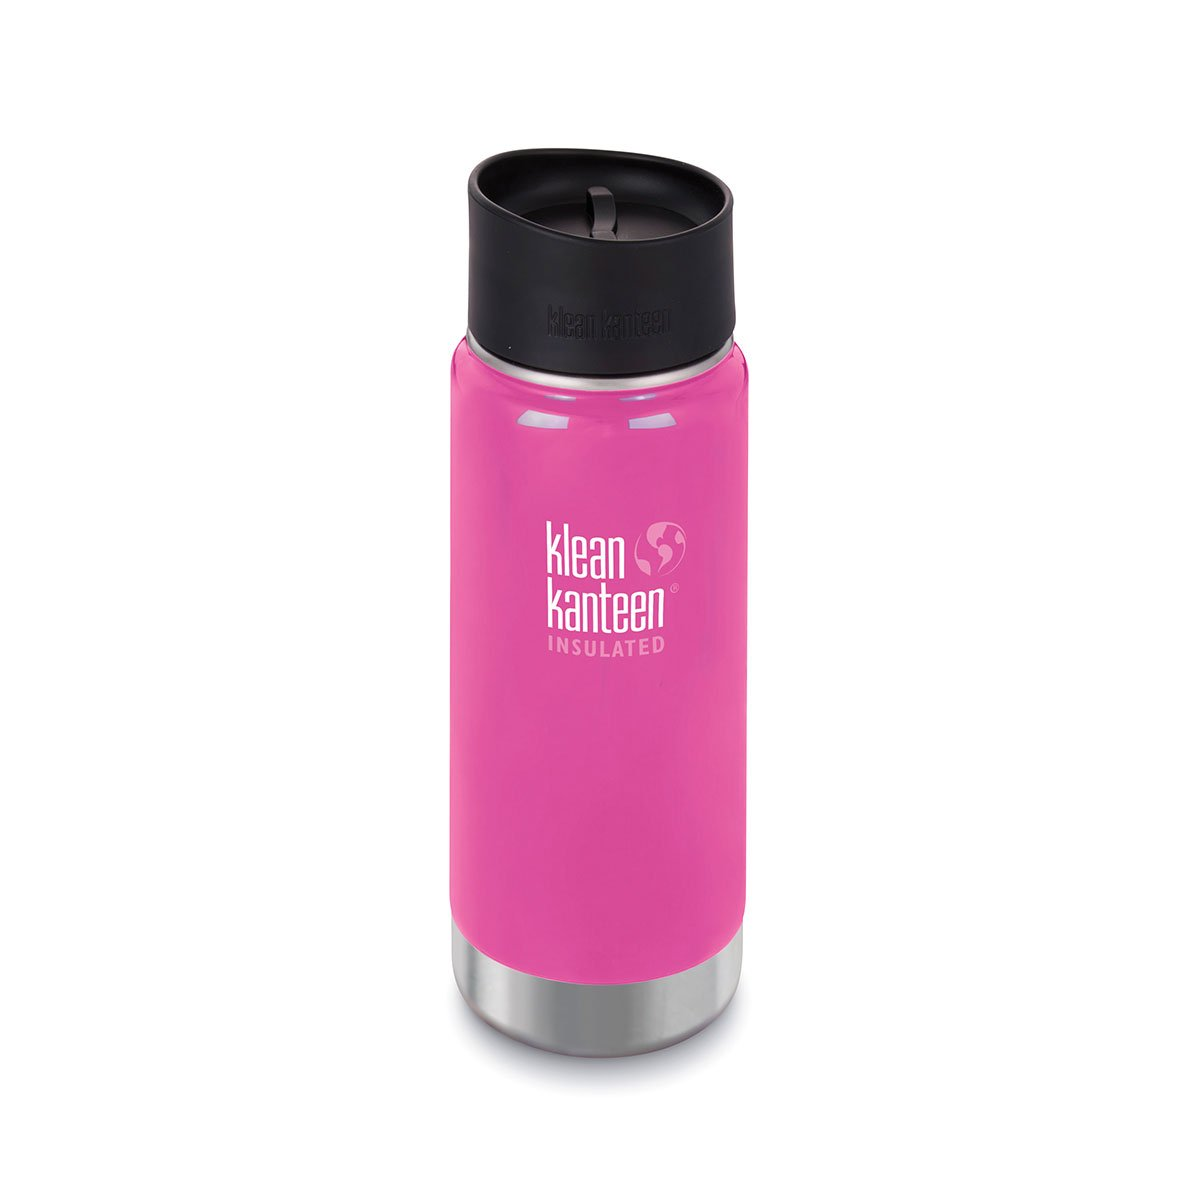 Klean Kanteen 16oz Wide Insulated Cafe Cap Wild Orchid